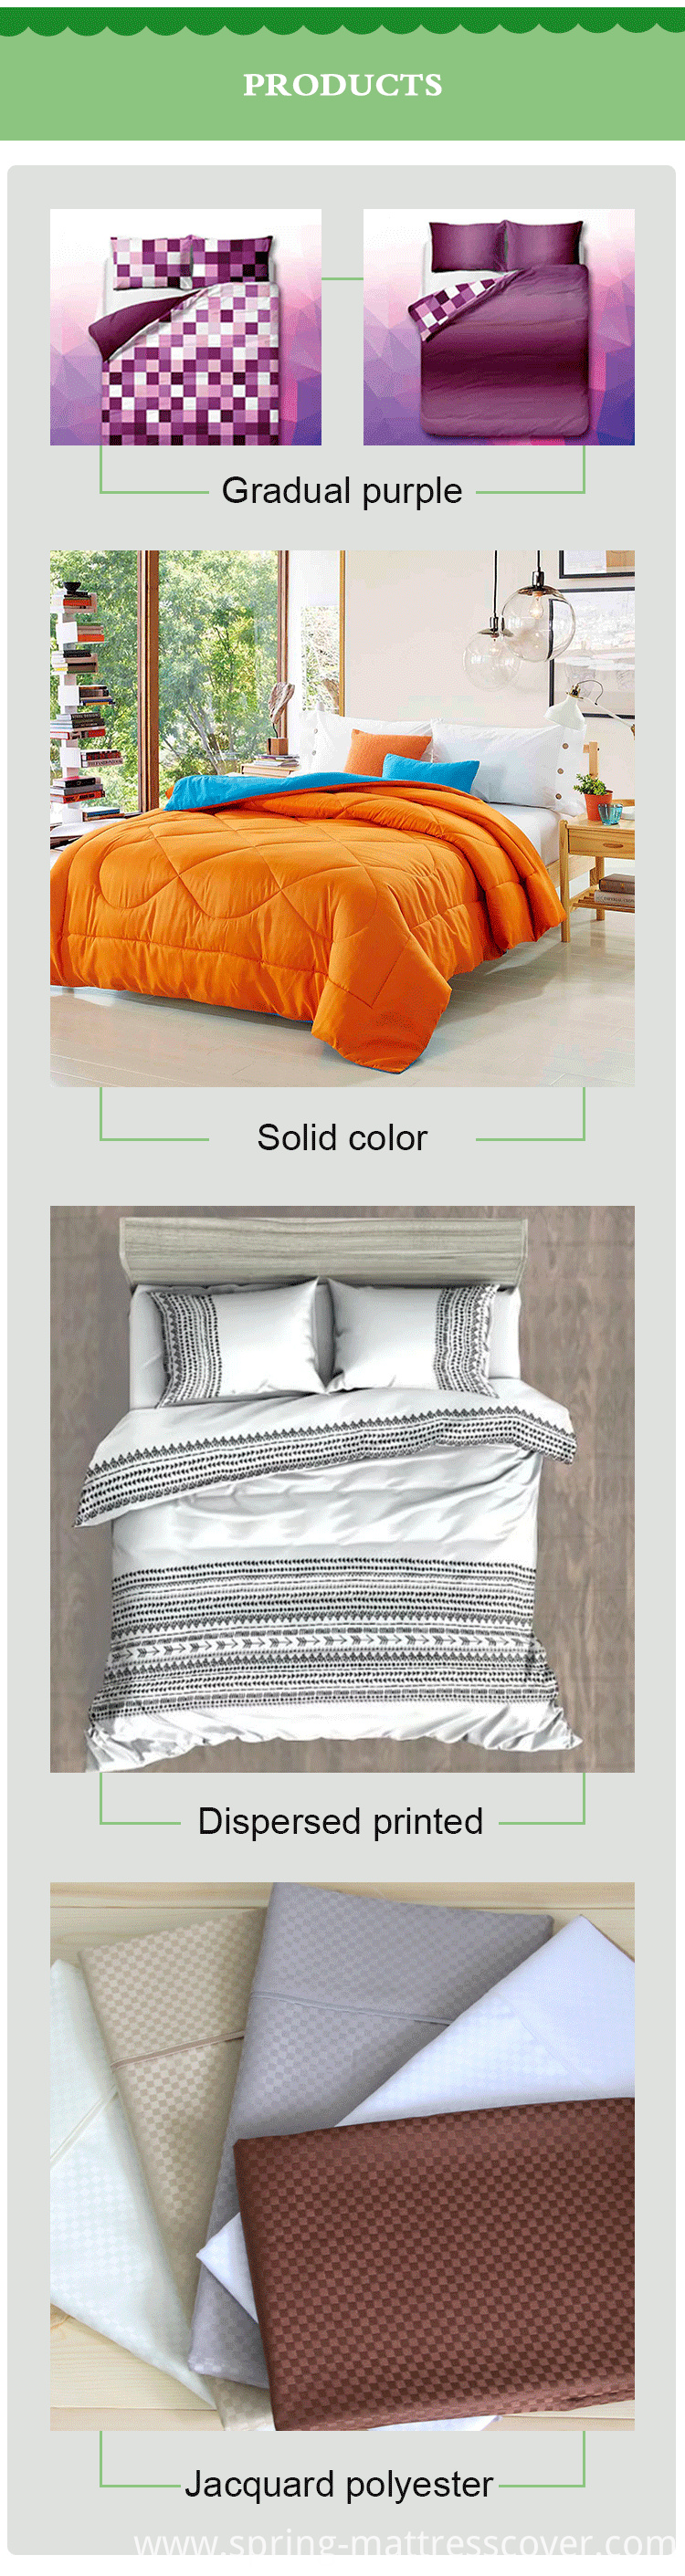 Home Sheets Bedding Set